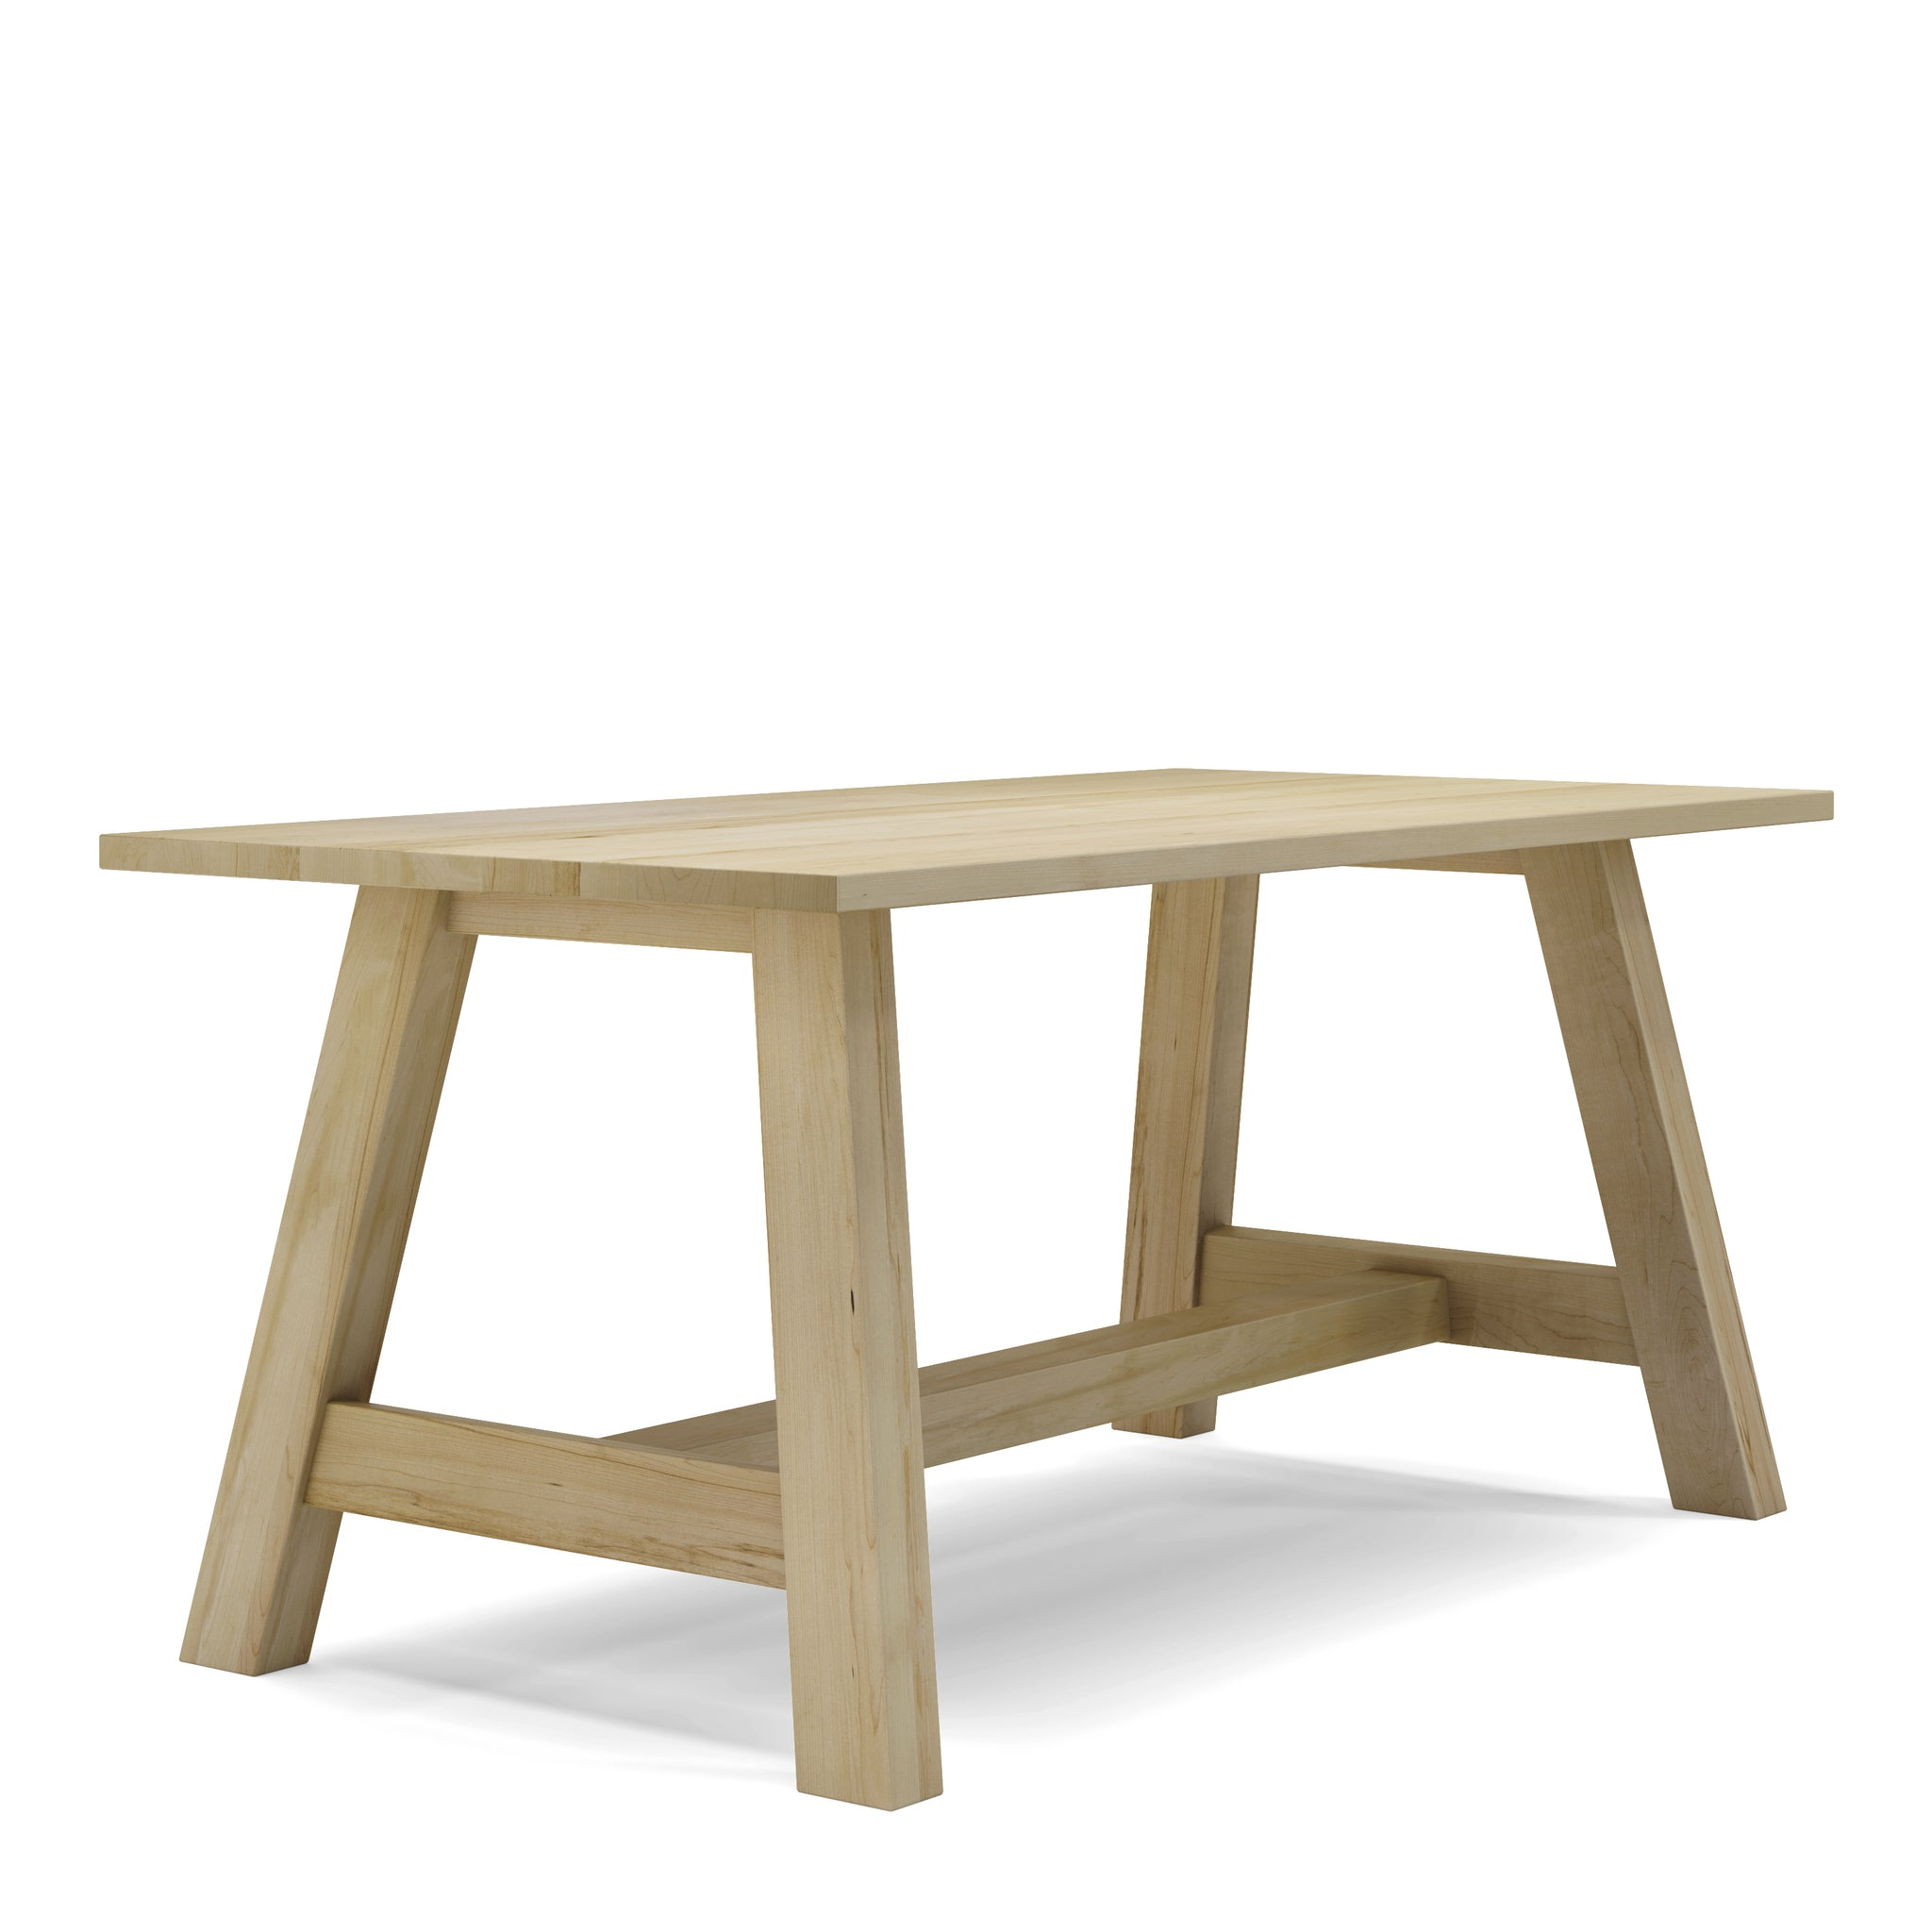 Table en bois massif érable farmhouse